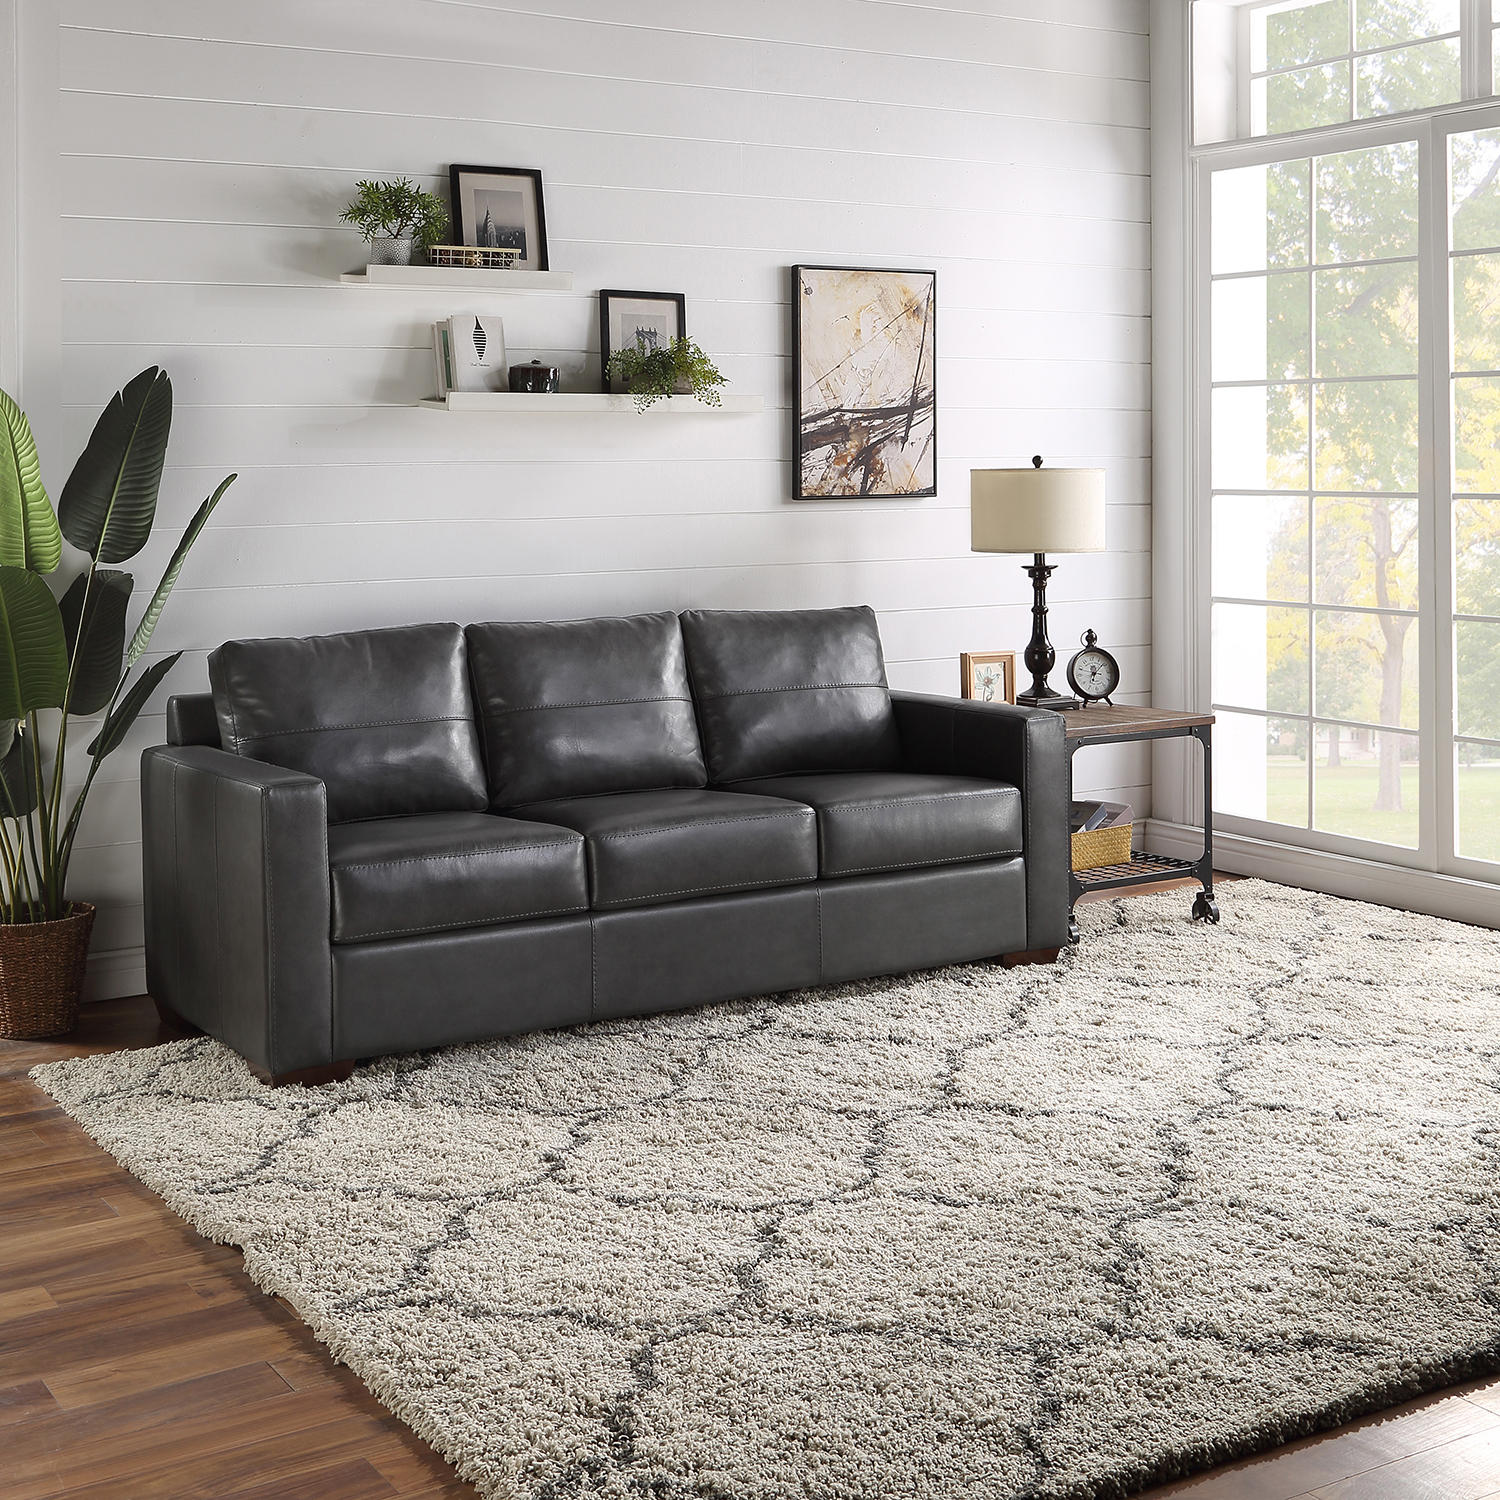 Member's Mark Providence Leather Match Sofa